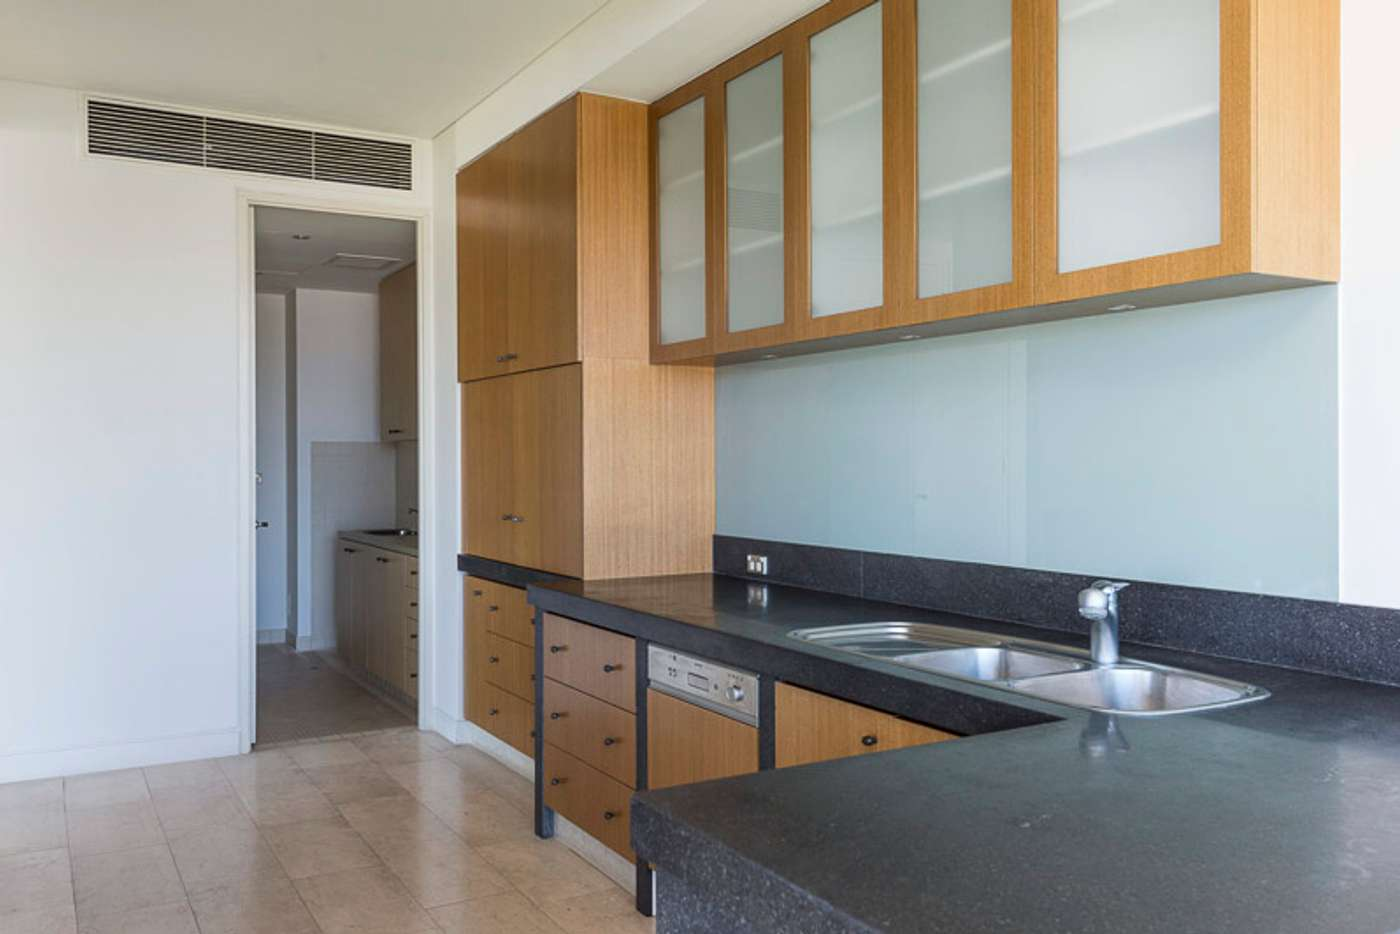 Sixth view of Homely apartment listing, 6/1 Corkhill Street, North Fremantle WA 6159